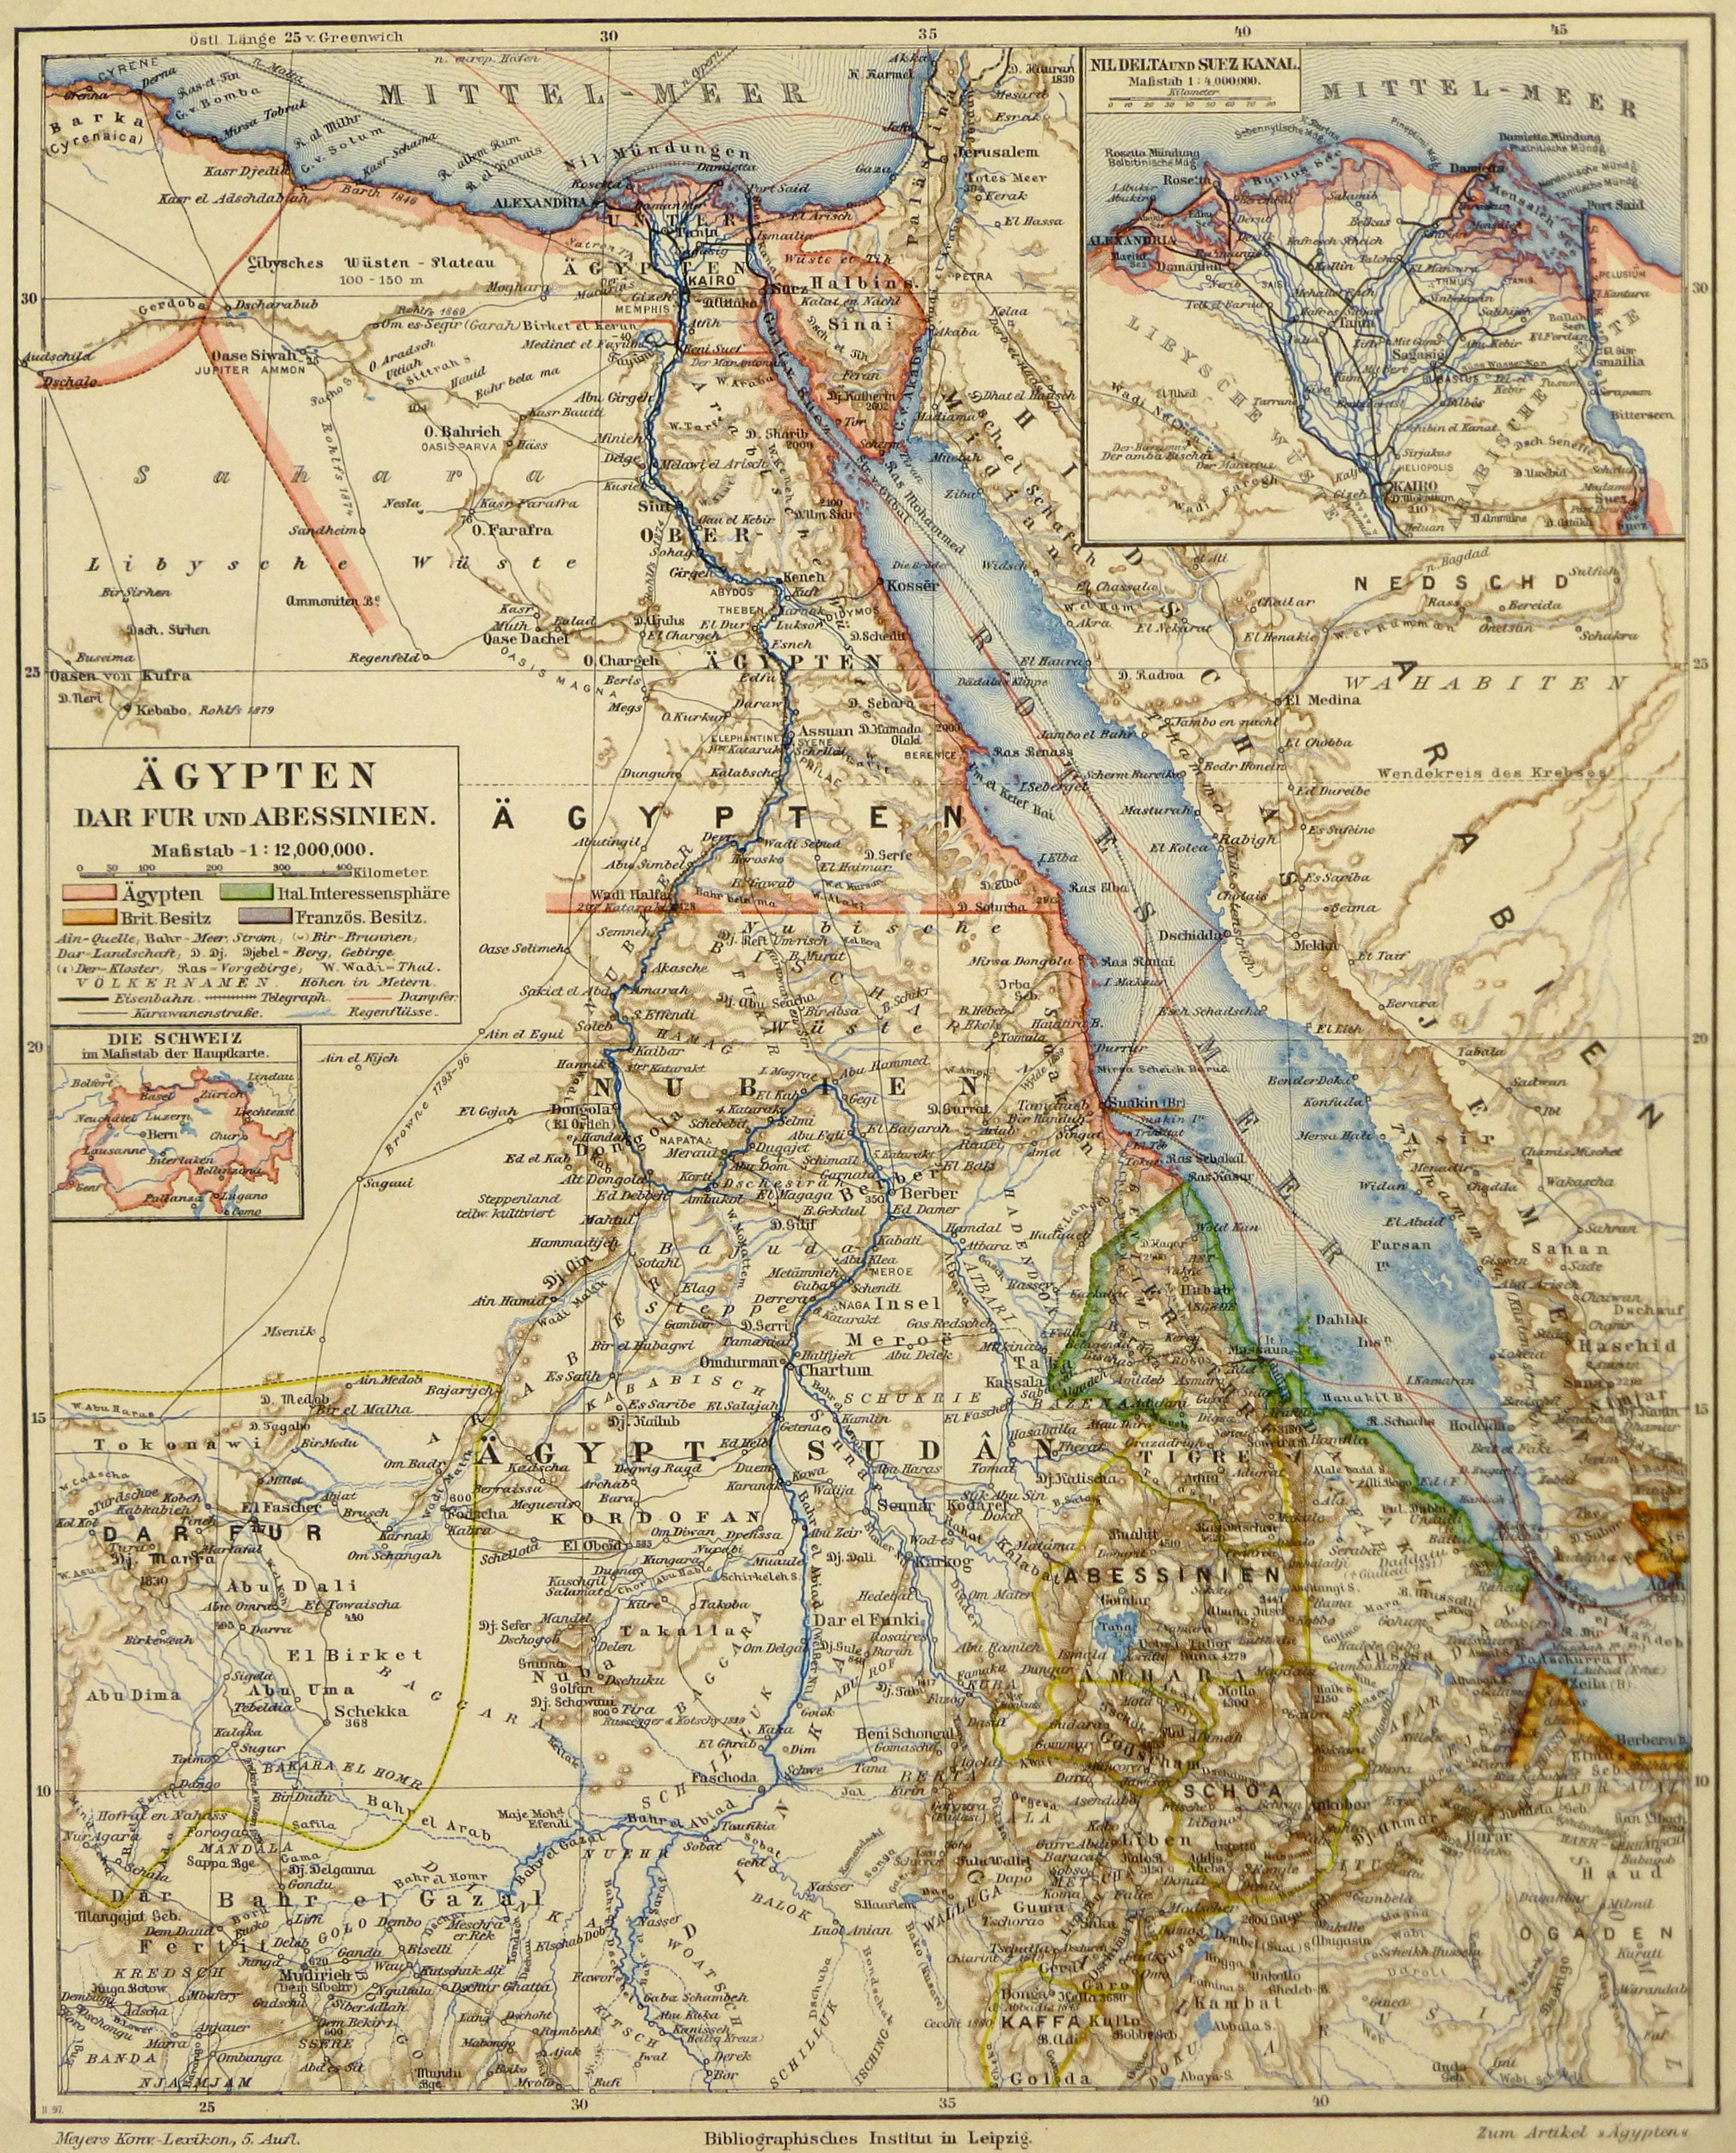 Egypt, Sudan & Ethiopia Map, Circa 1880-main-5791K